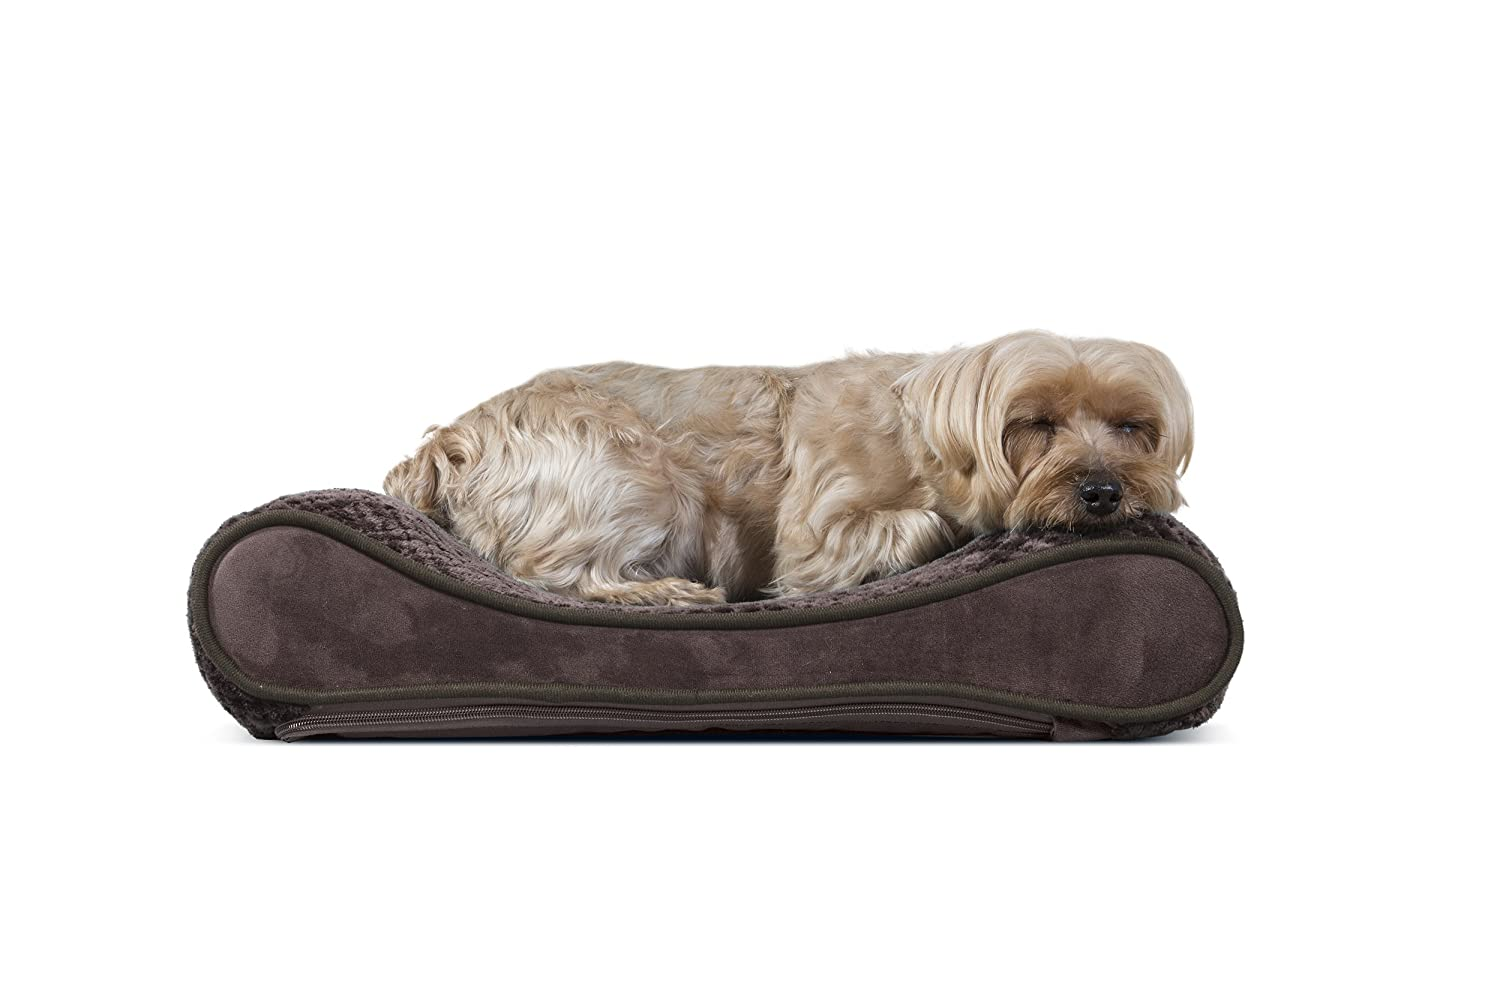 FurHaven Pet Dog Bed | Orthopedic Microvelvet Luxe Lounger Pet Bed Dogs & Cats, Gray, Jumbo Furhaven Pet Products 31539397